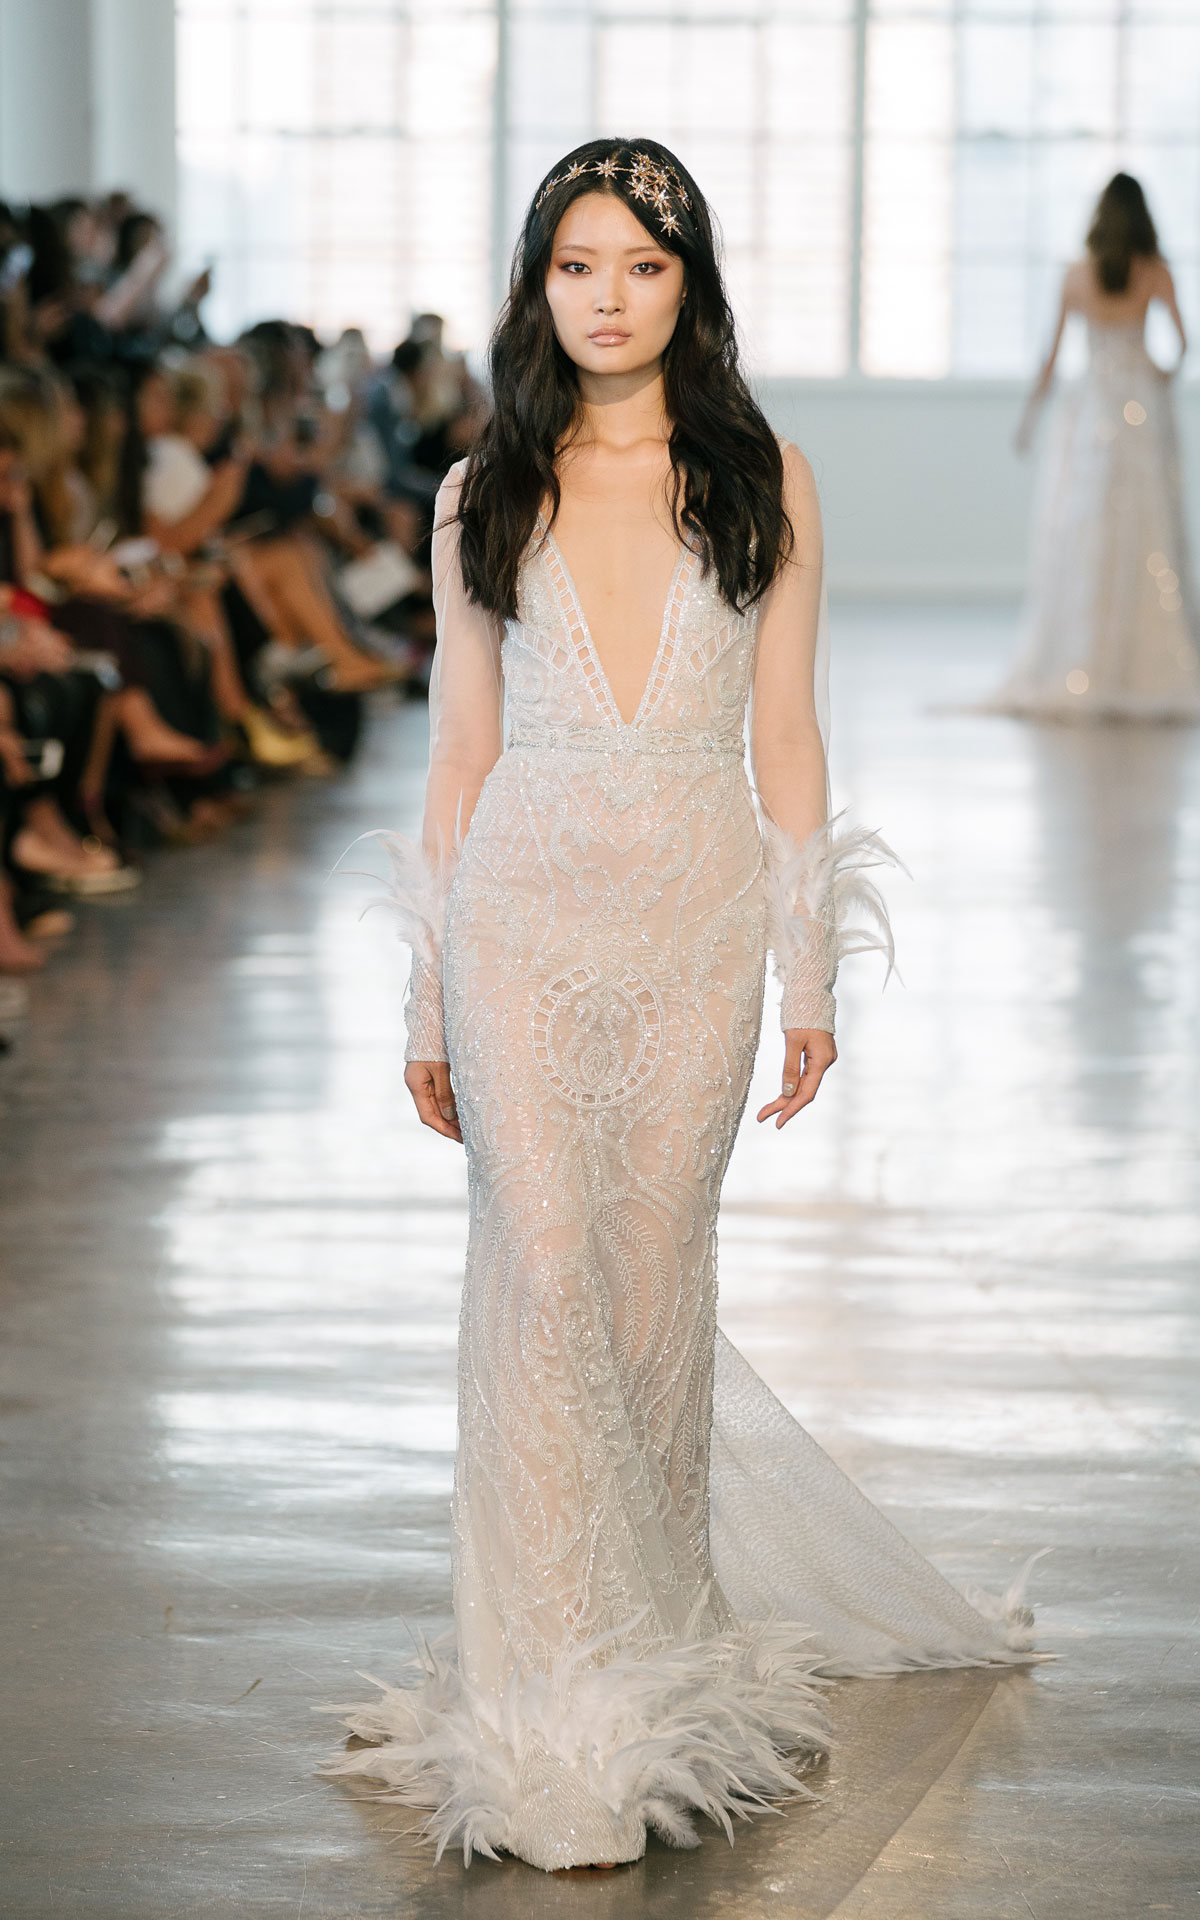 96d8f5d4933a Five Wedding Dress Trends For 2019 | Omaha Lace Cleaners